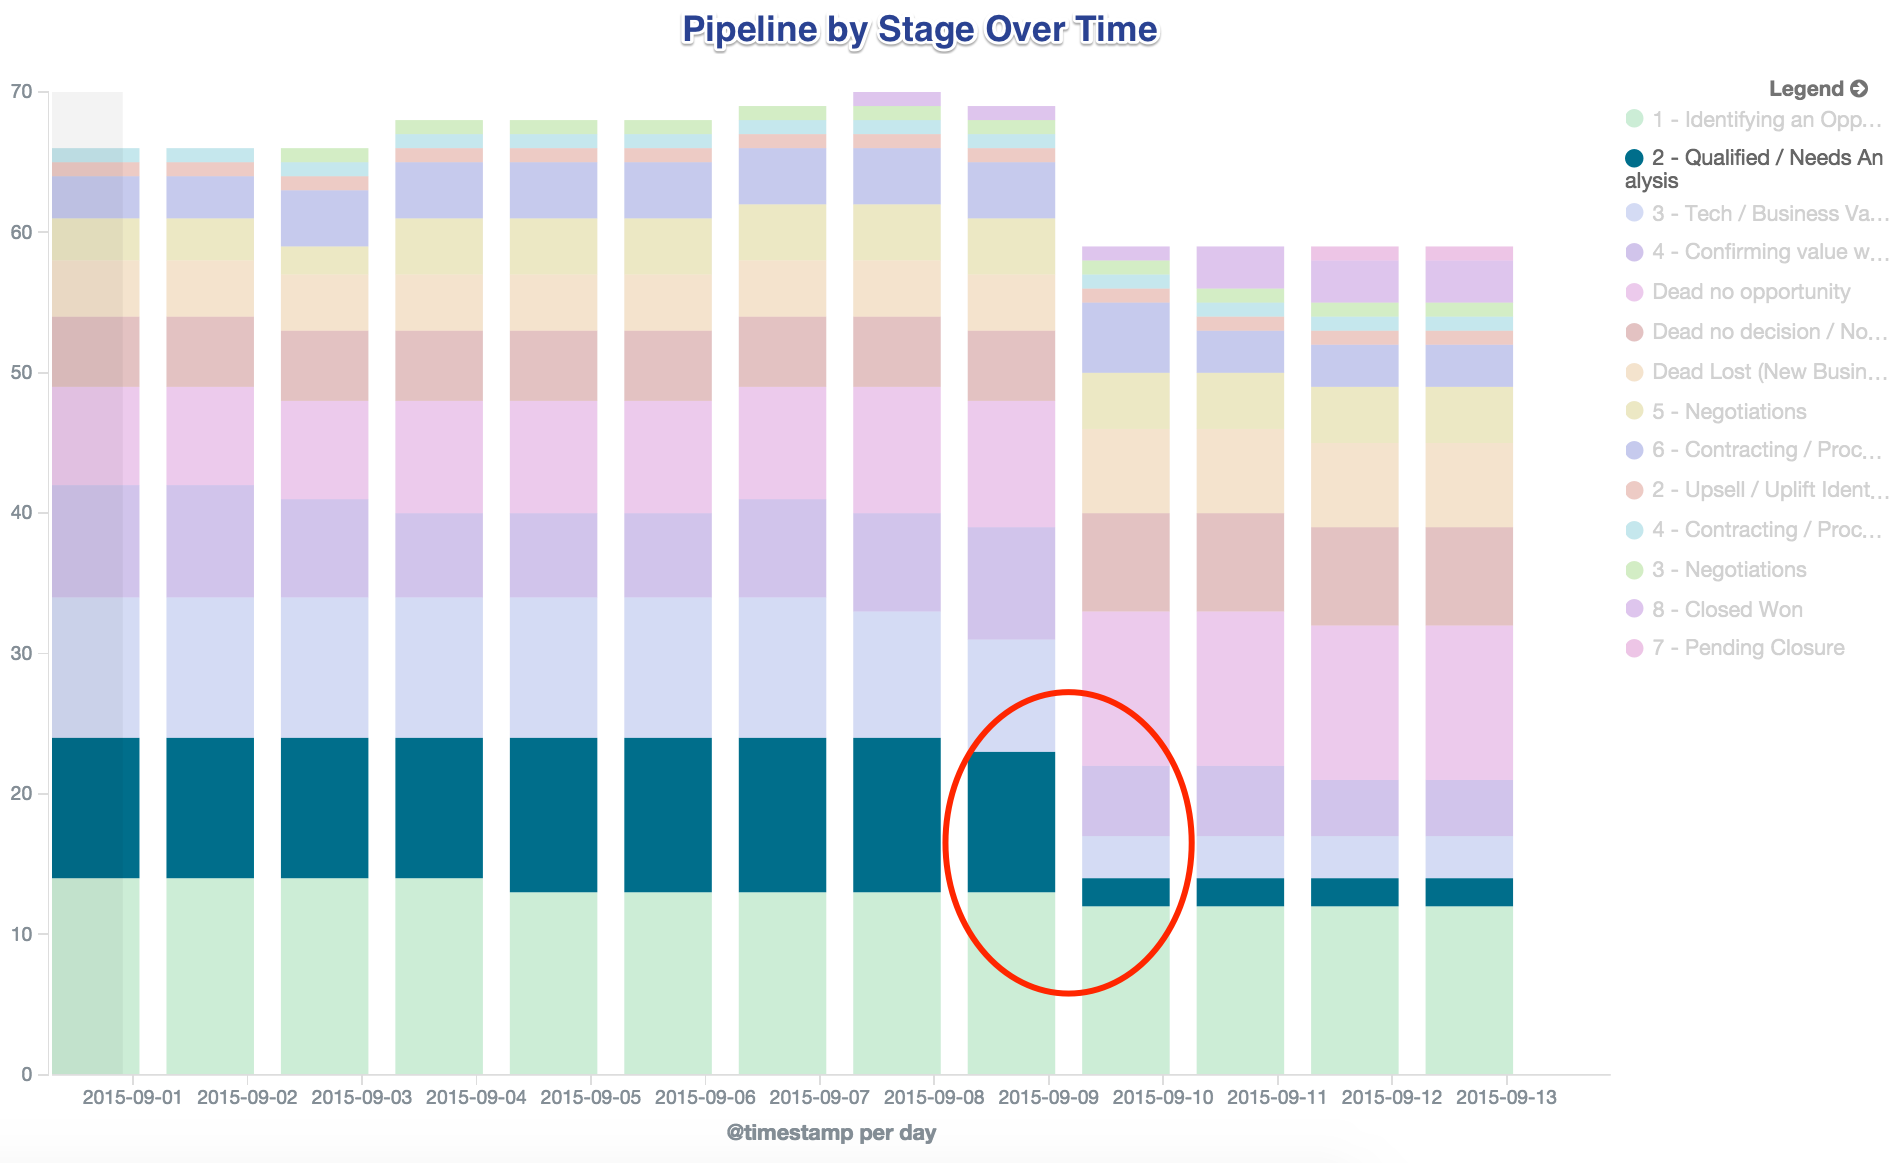 Pipeline By Stage Over Time